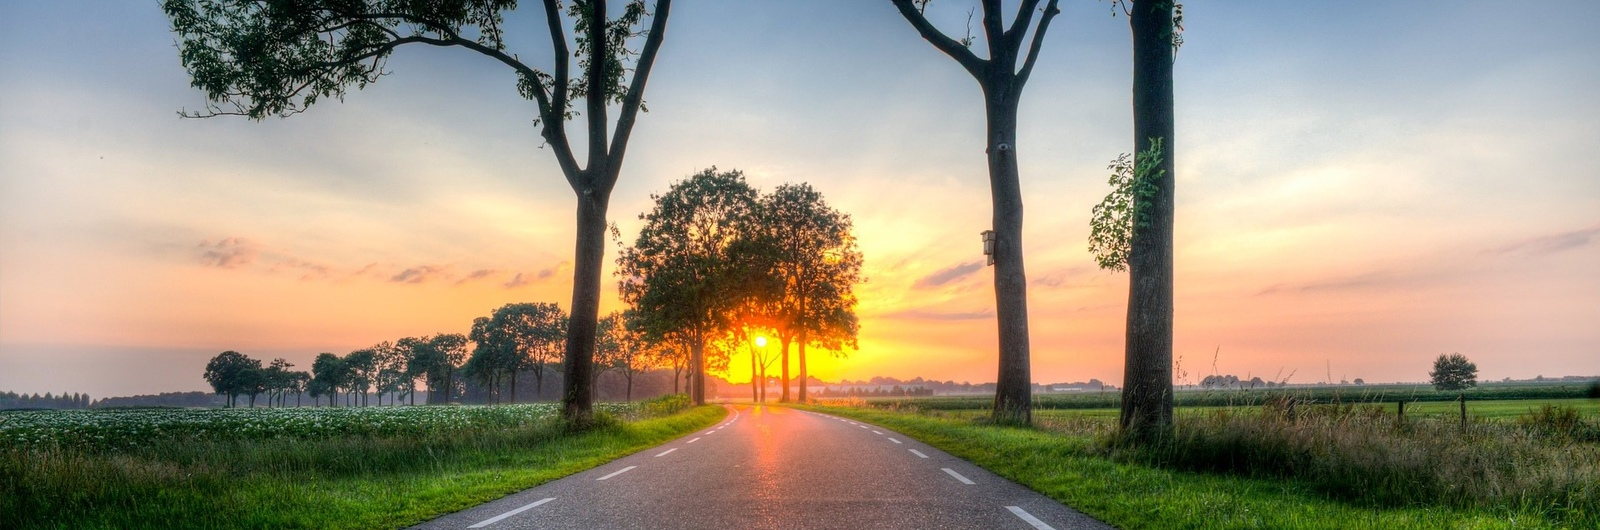 city header netherlands road sunset